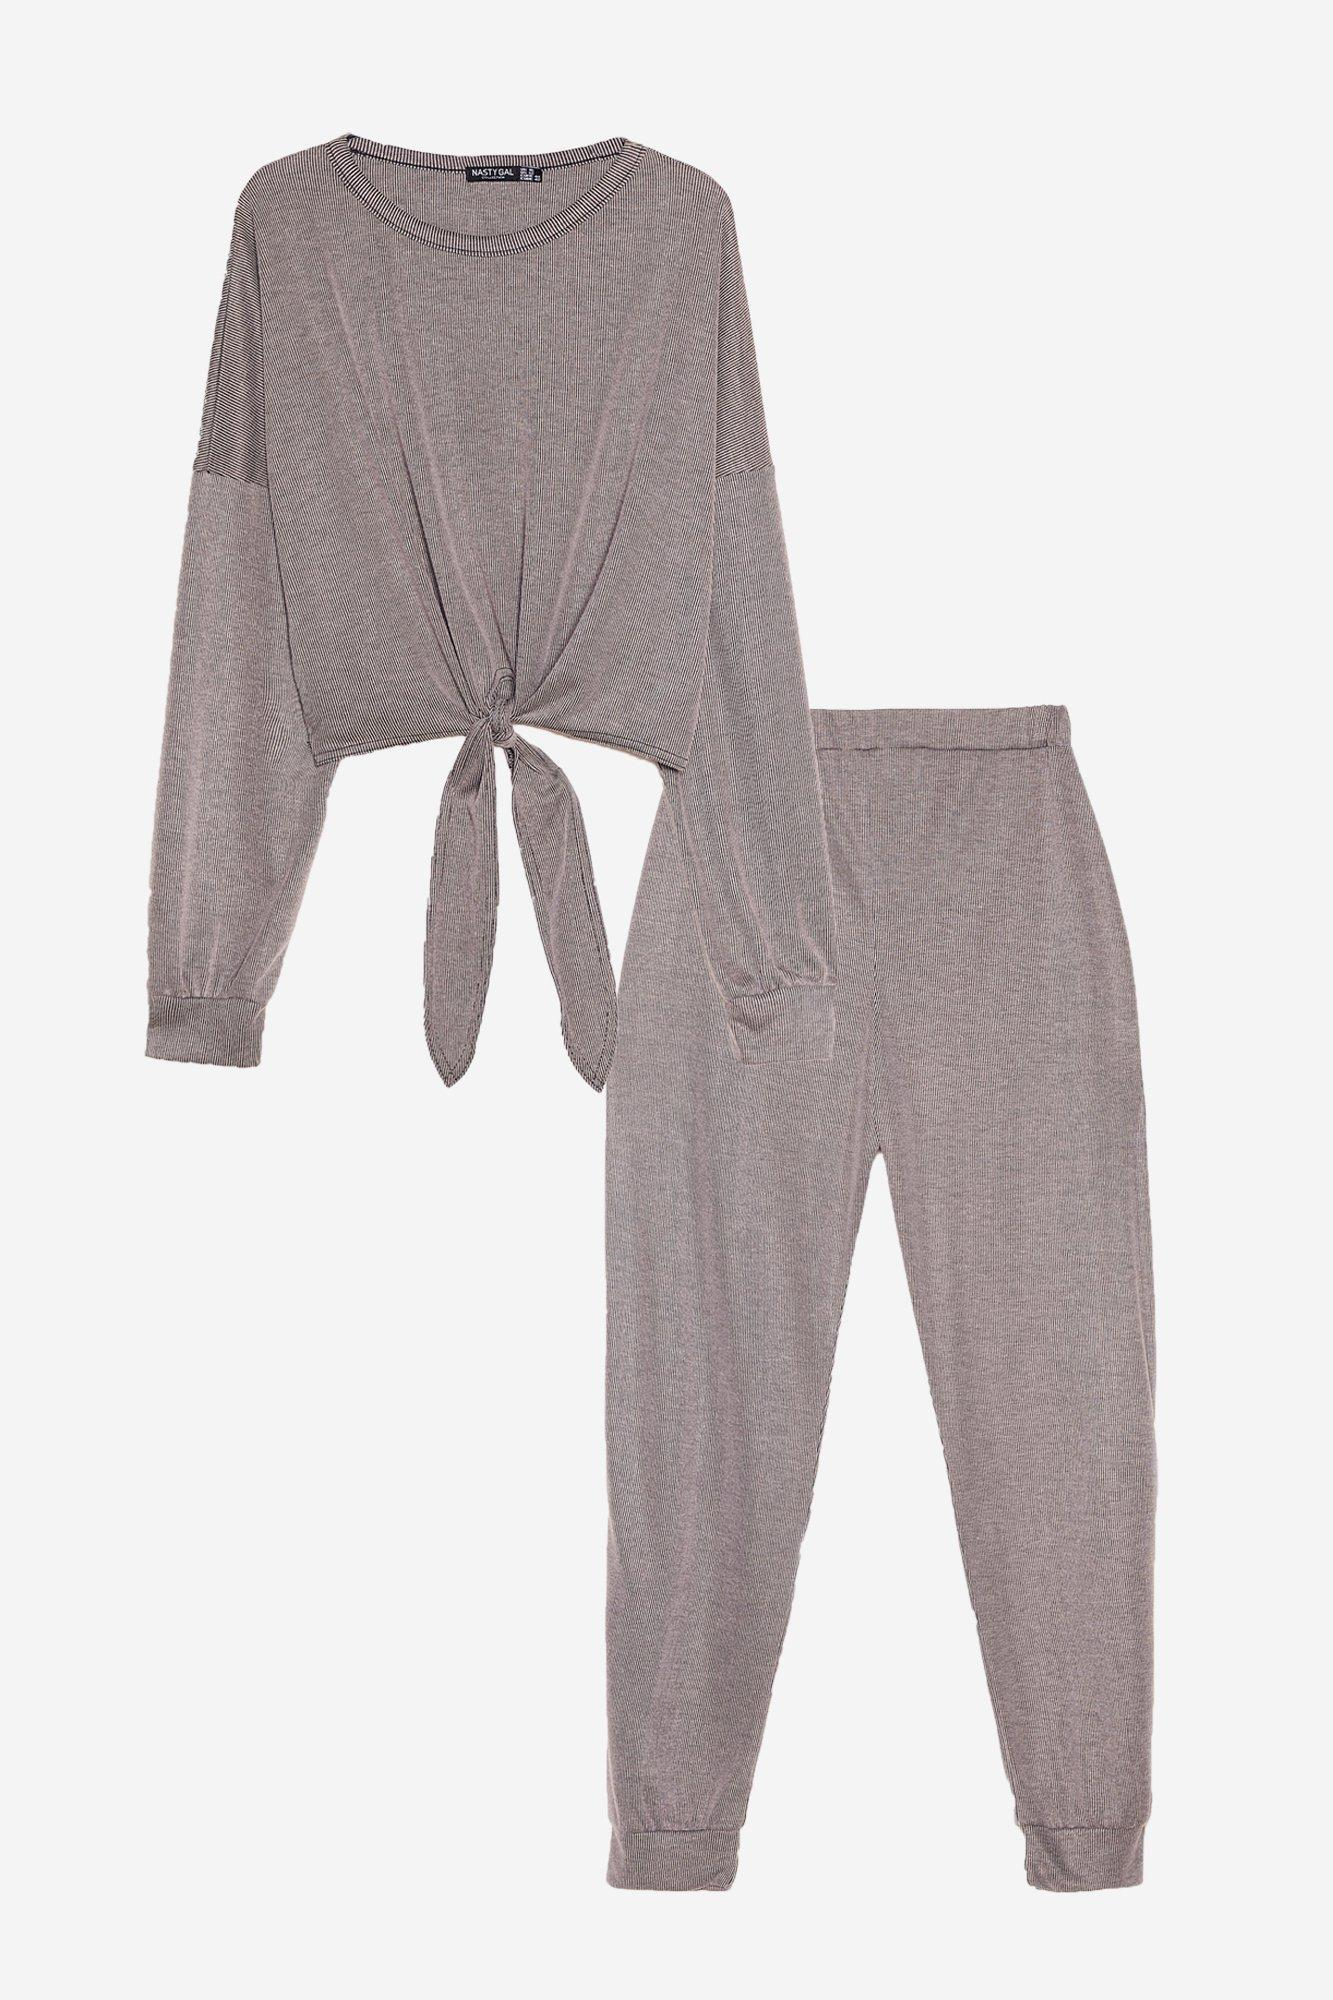 Tie Miss You Baby Plus Ribbed Top and Jogger Set 17